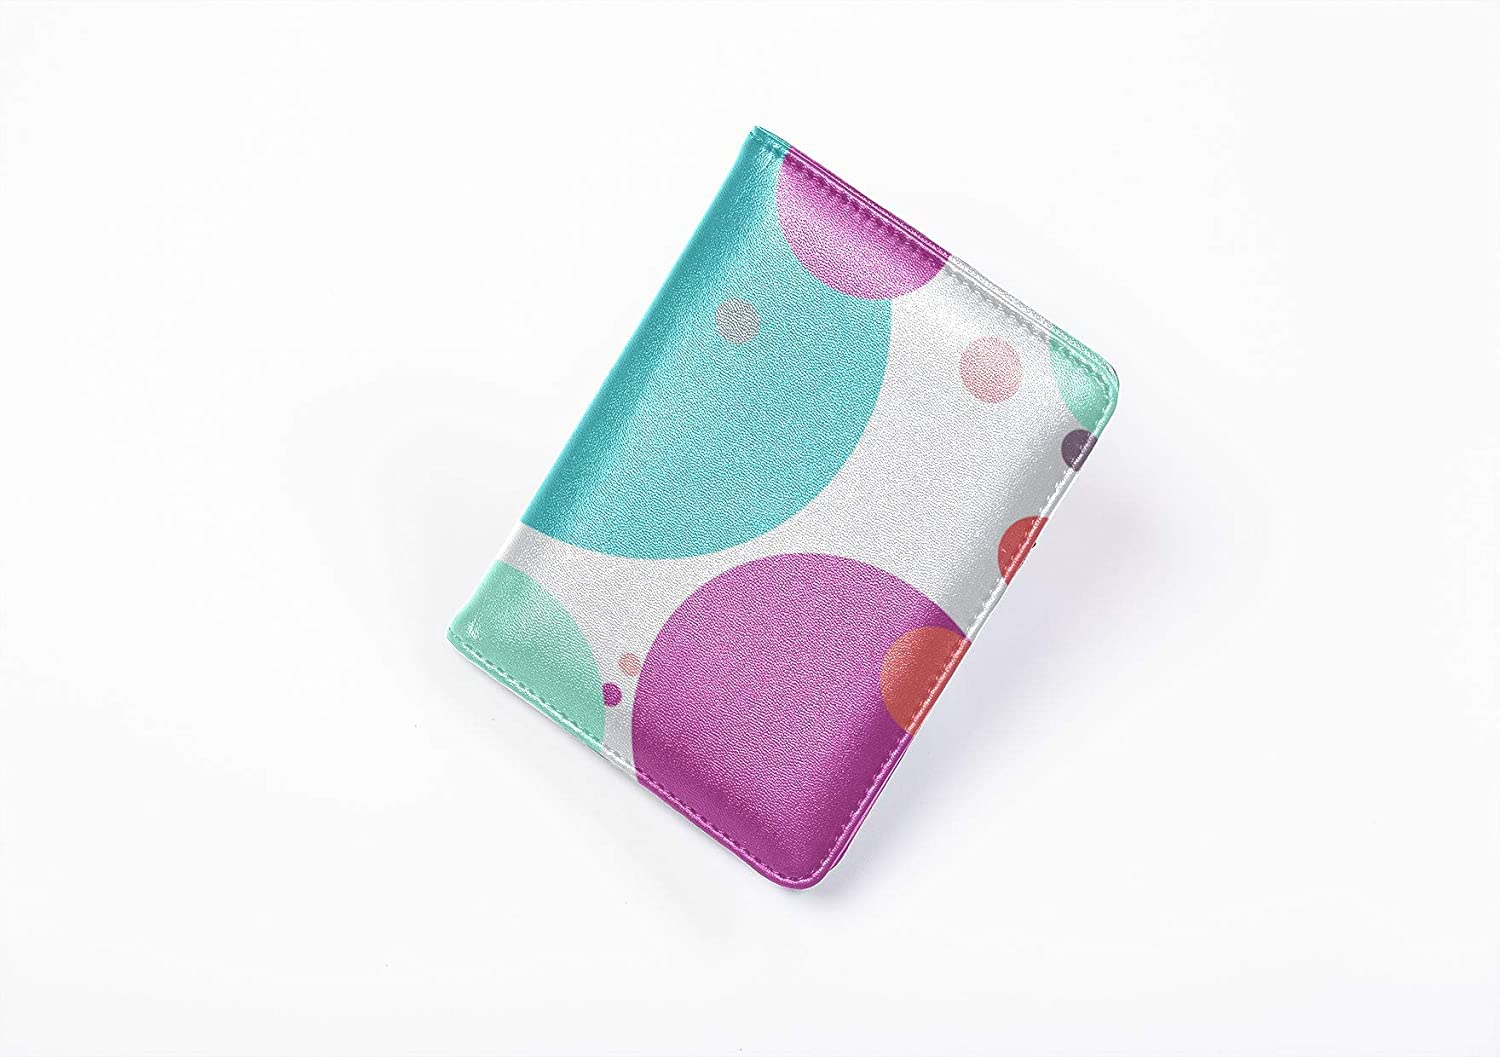 Passport Cases Dreamy Colorful Bubble Waterdrop Mens Passport Case Multi Purpose Print Luxury Passport Cover Travel Wallets For Unisex 5.51x4.37 Inch